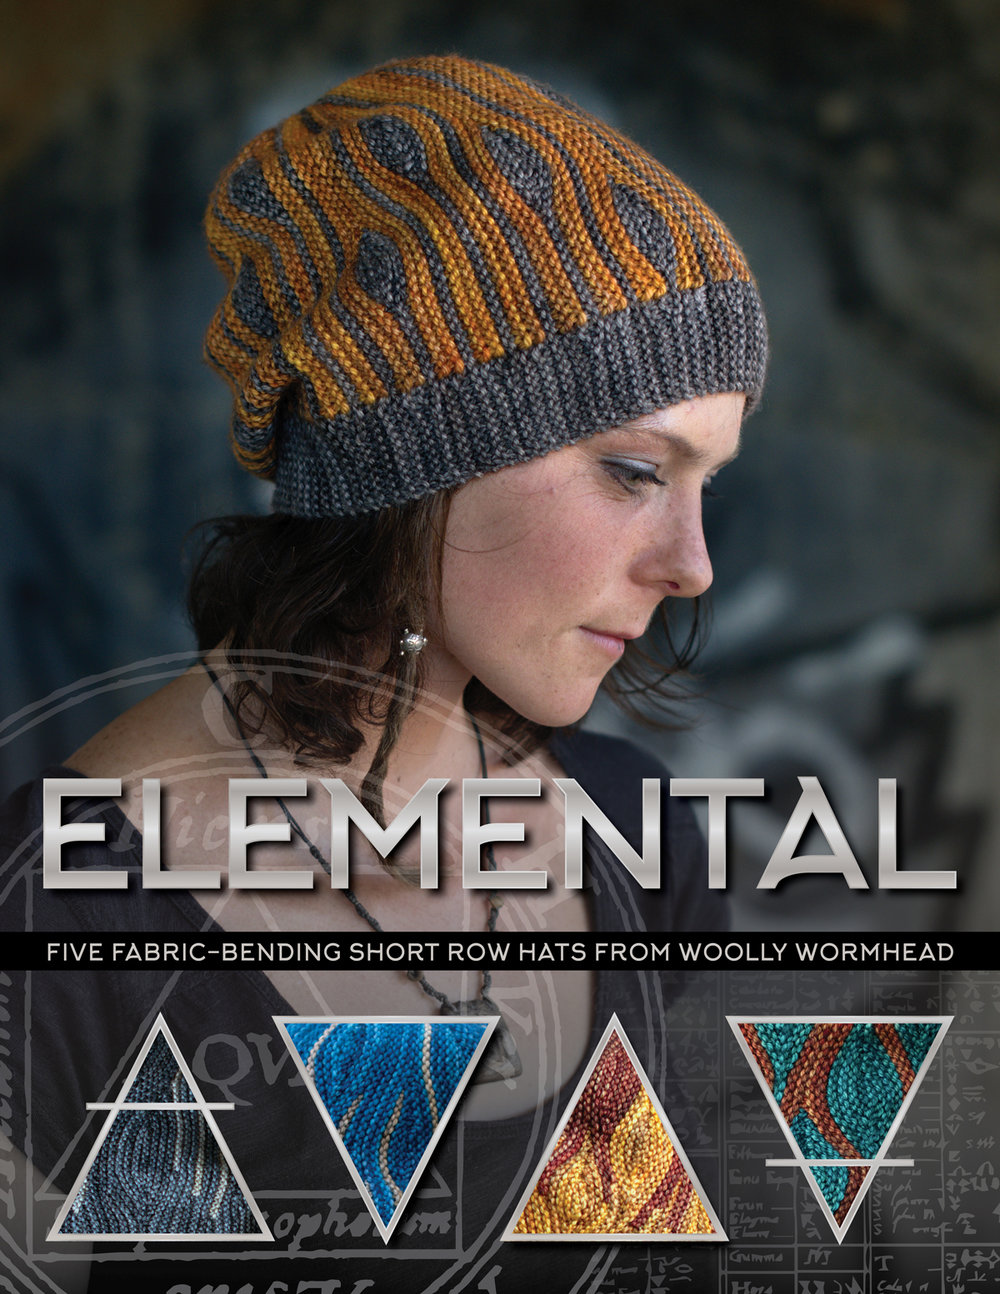 Elemental collection of sideways knit short row colourwork hats